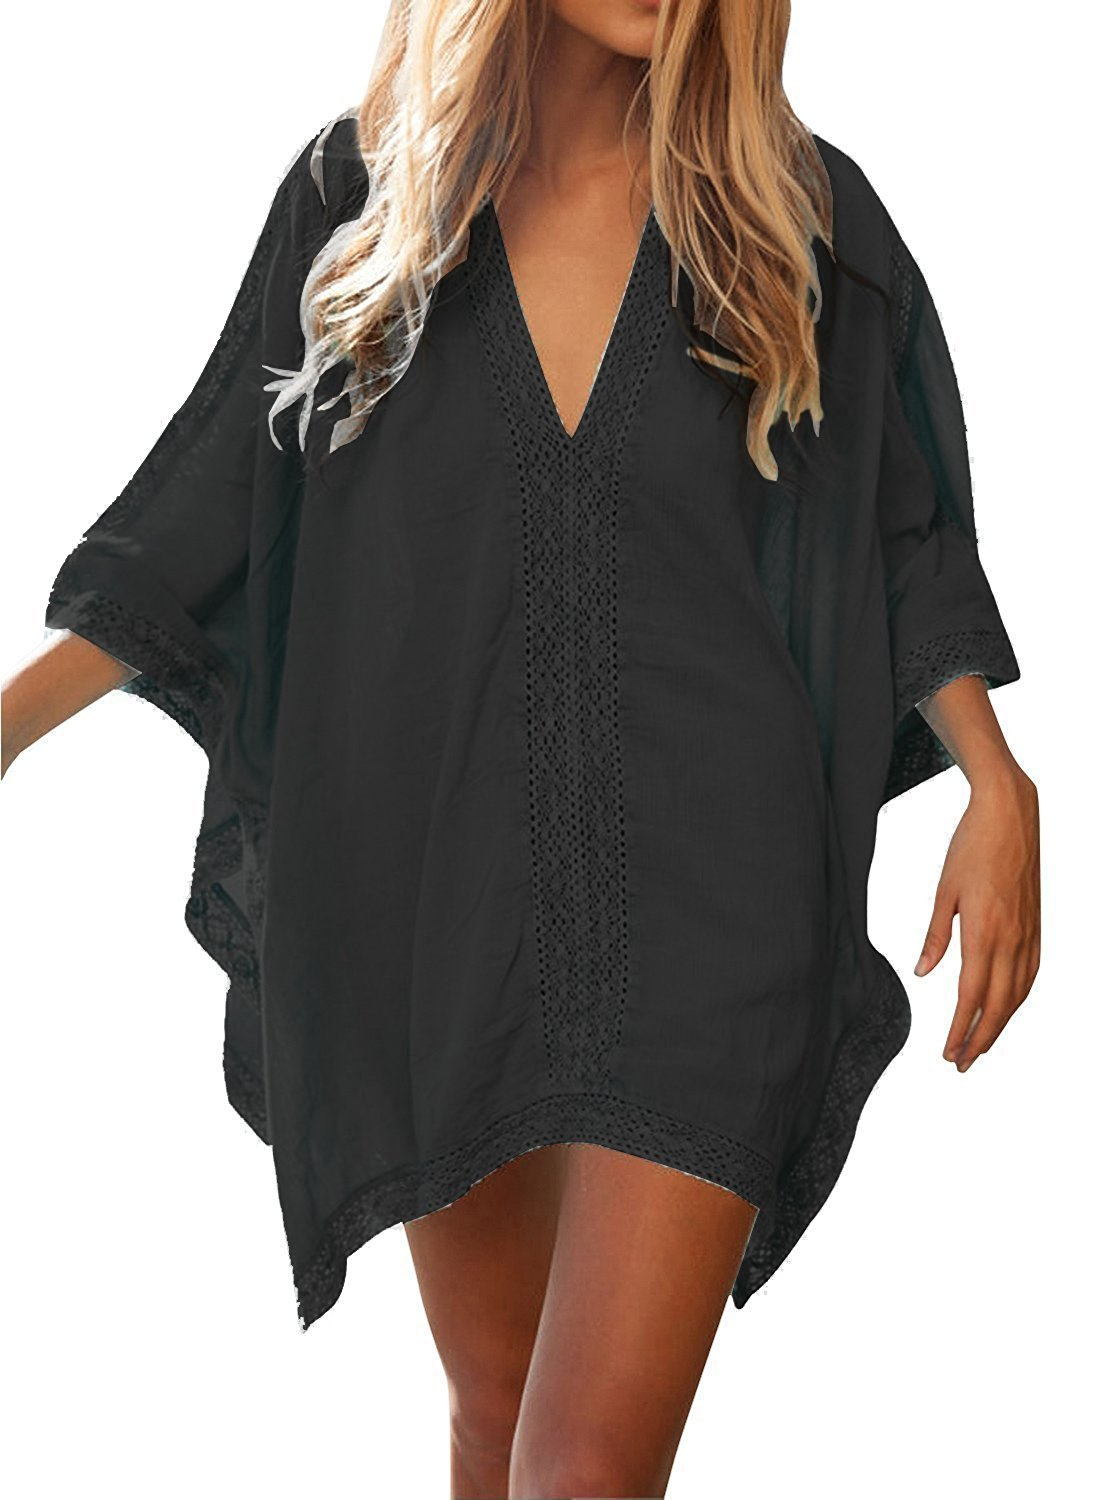 Walant Womens Solid Oversized Beach Cover up Swimsuit Bathing Suit Beach Dress (one Size, Black)